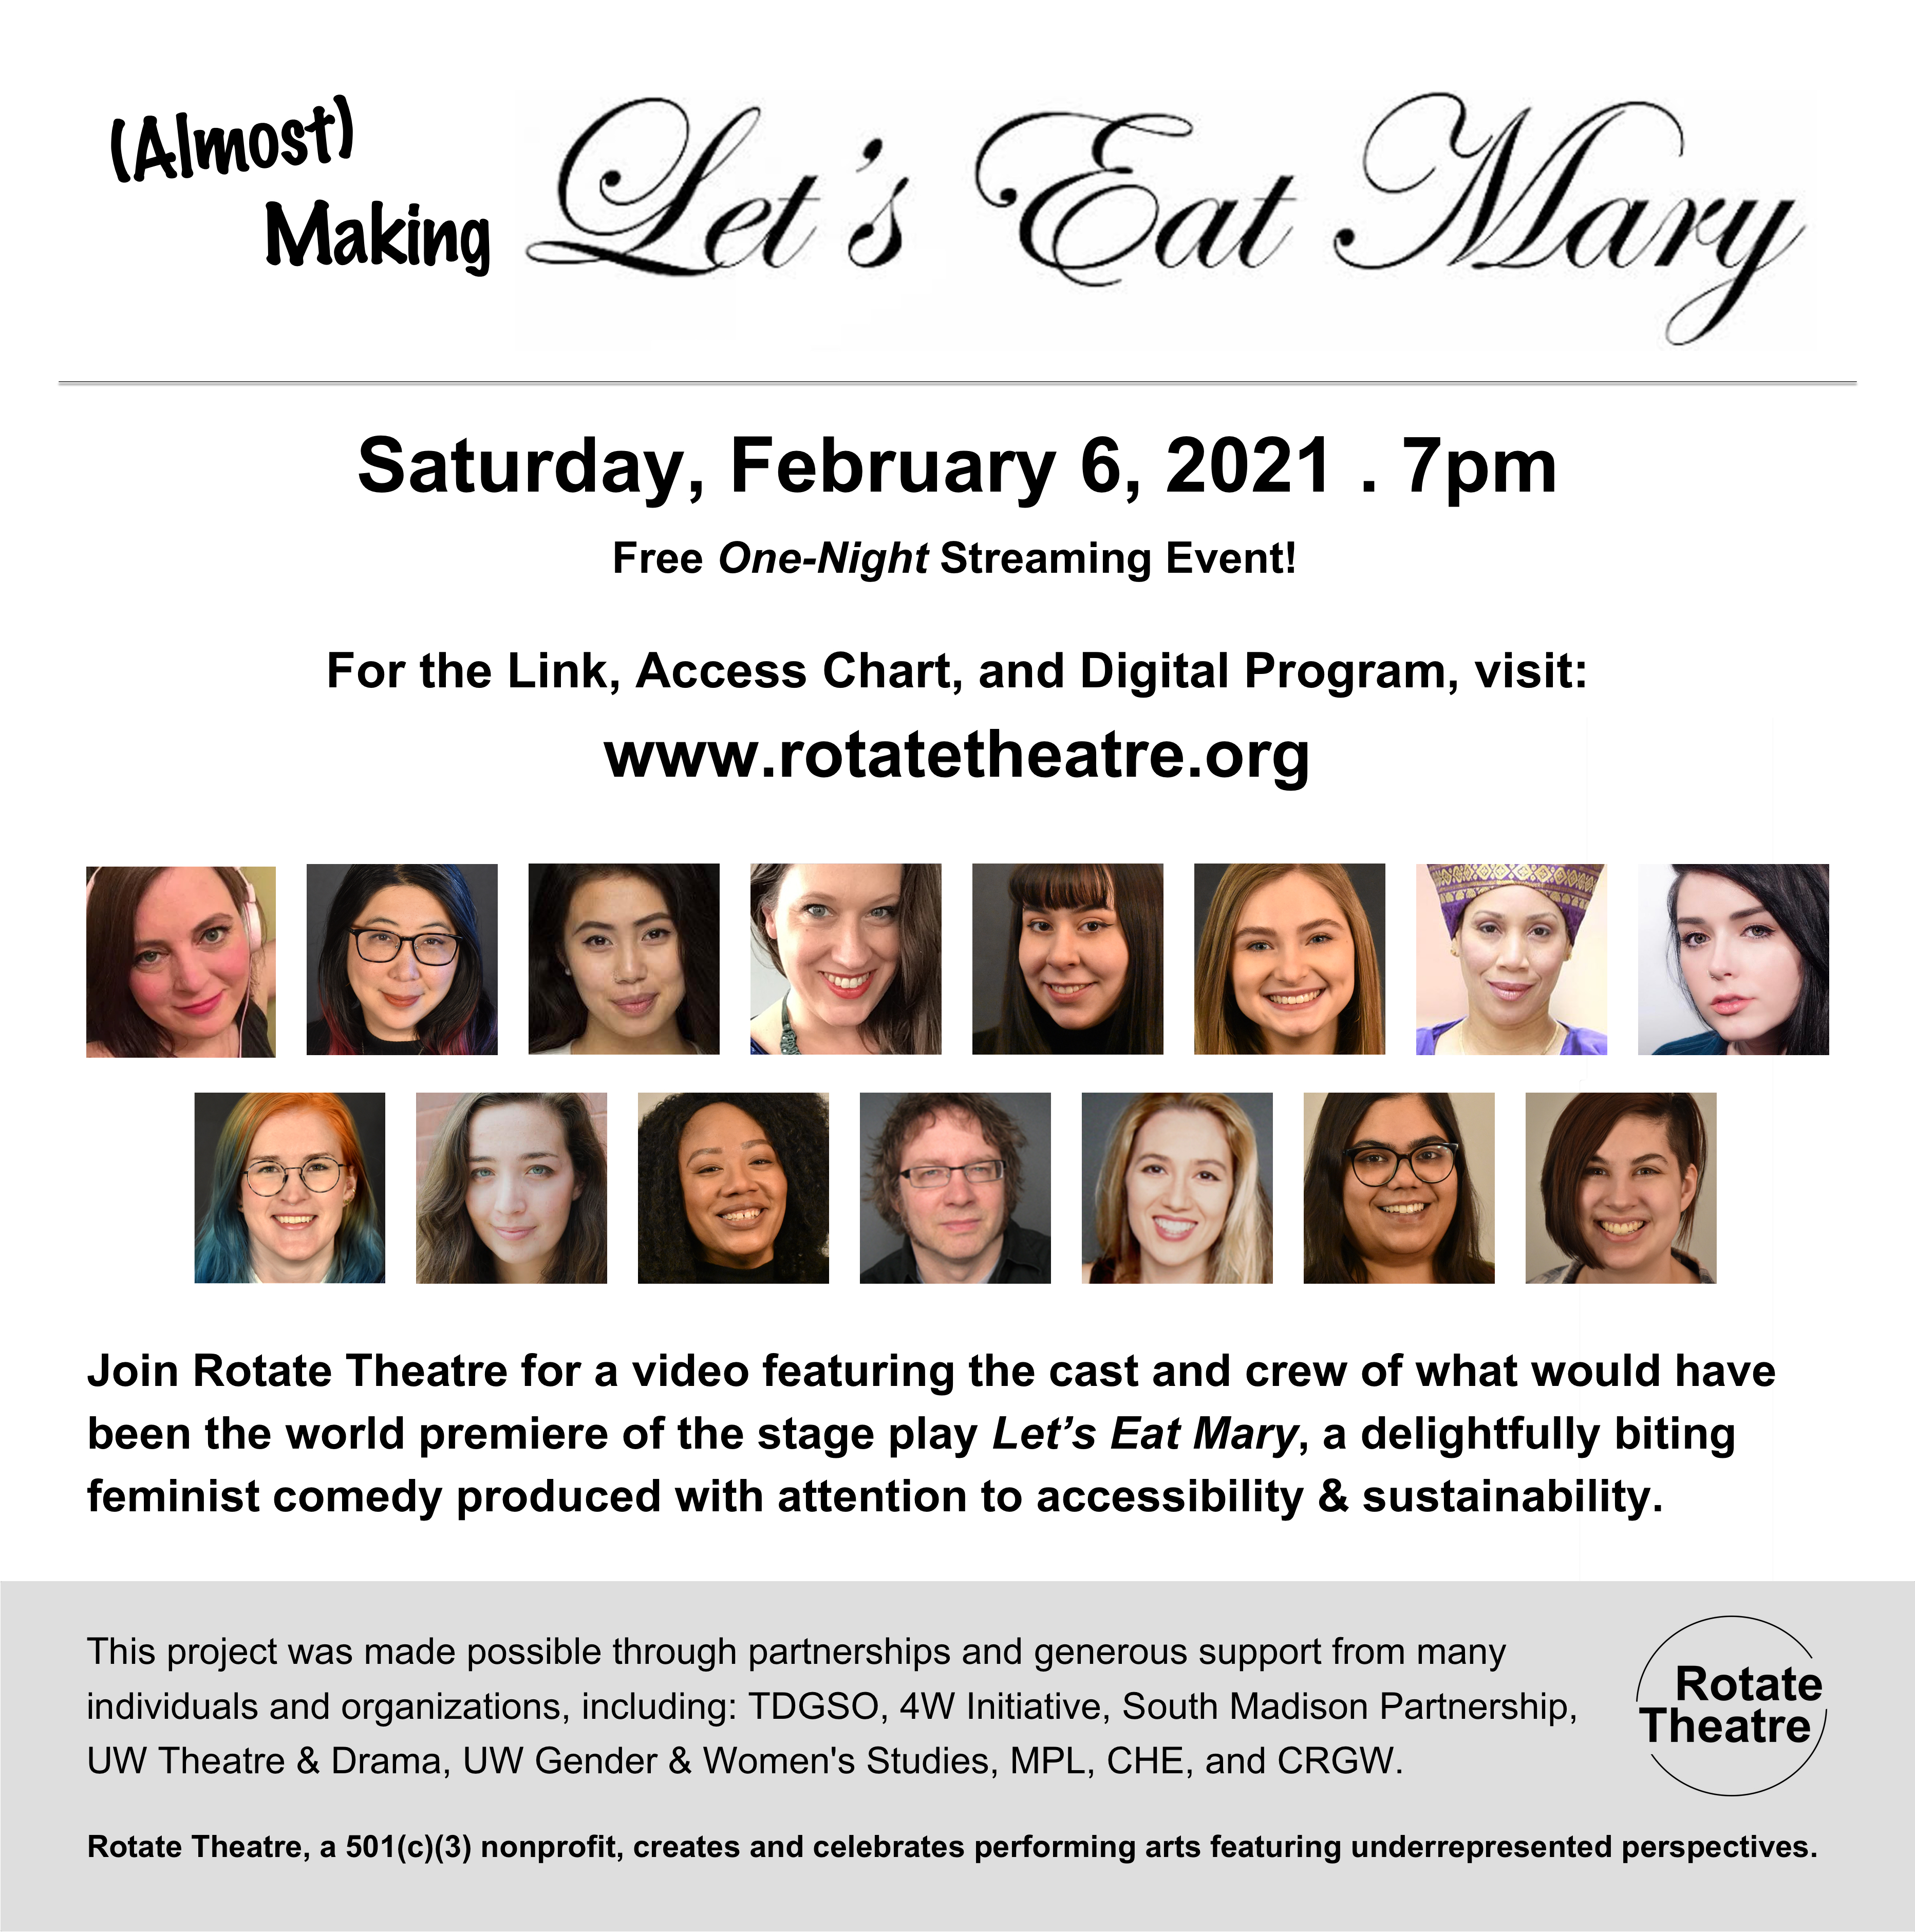 Almost Making Let's Eat Mary flyer